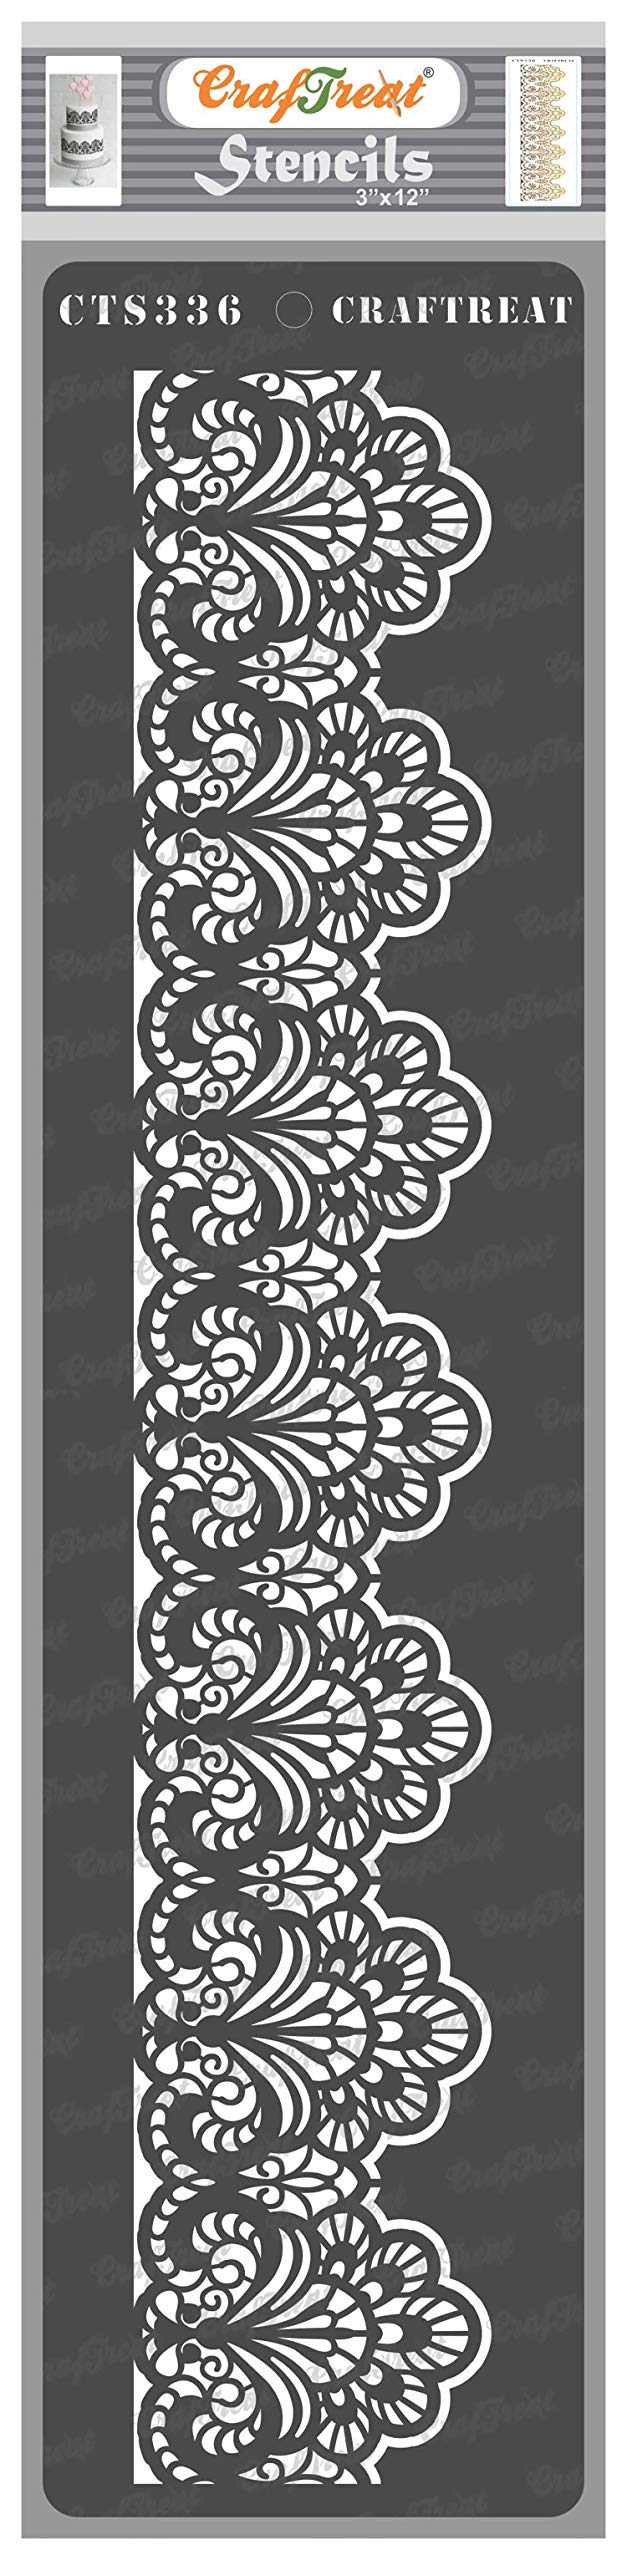 CrafTreat Lace Stencils for Painting on Wood, Canvas, Paper, Fabric, Floor, Wall and Tile - Border1-3x12 Inches - Reusable DIY Art and Craft Stencils for Border - Border Lace Wall Stencil